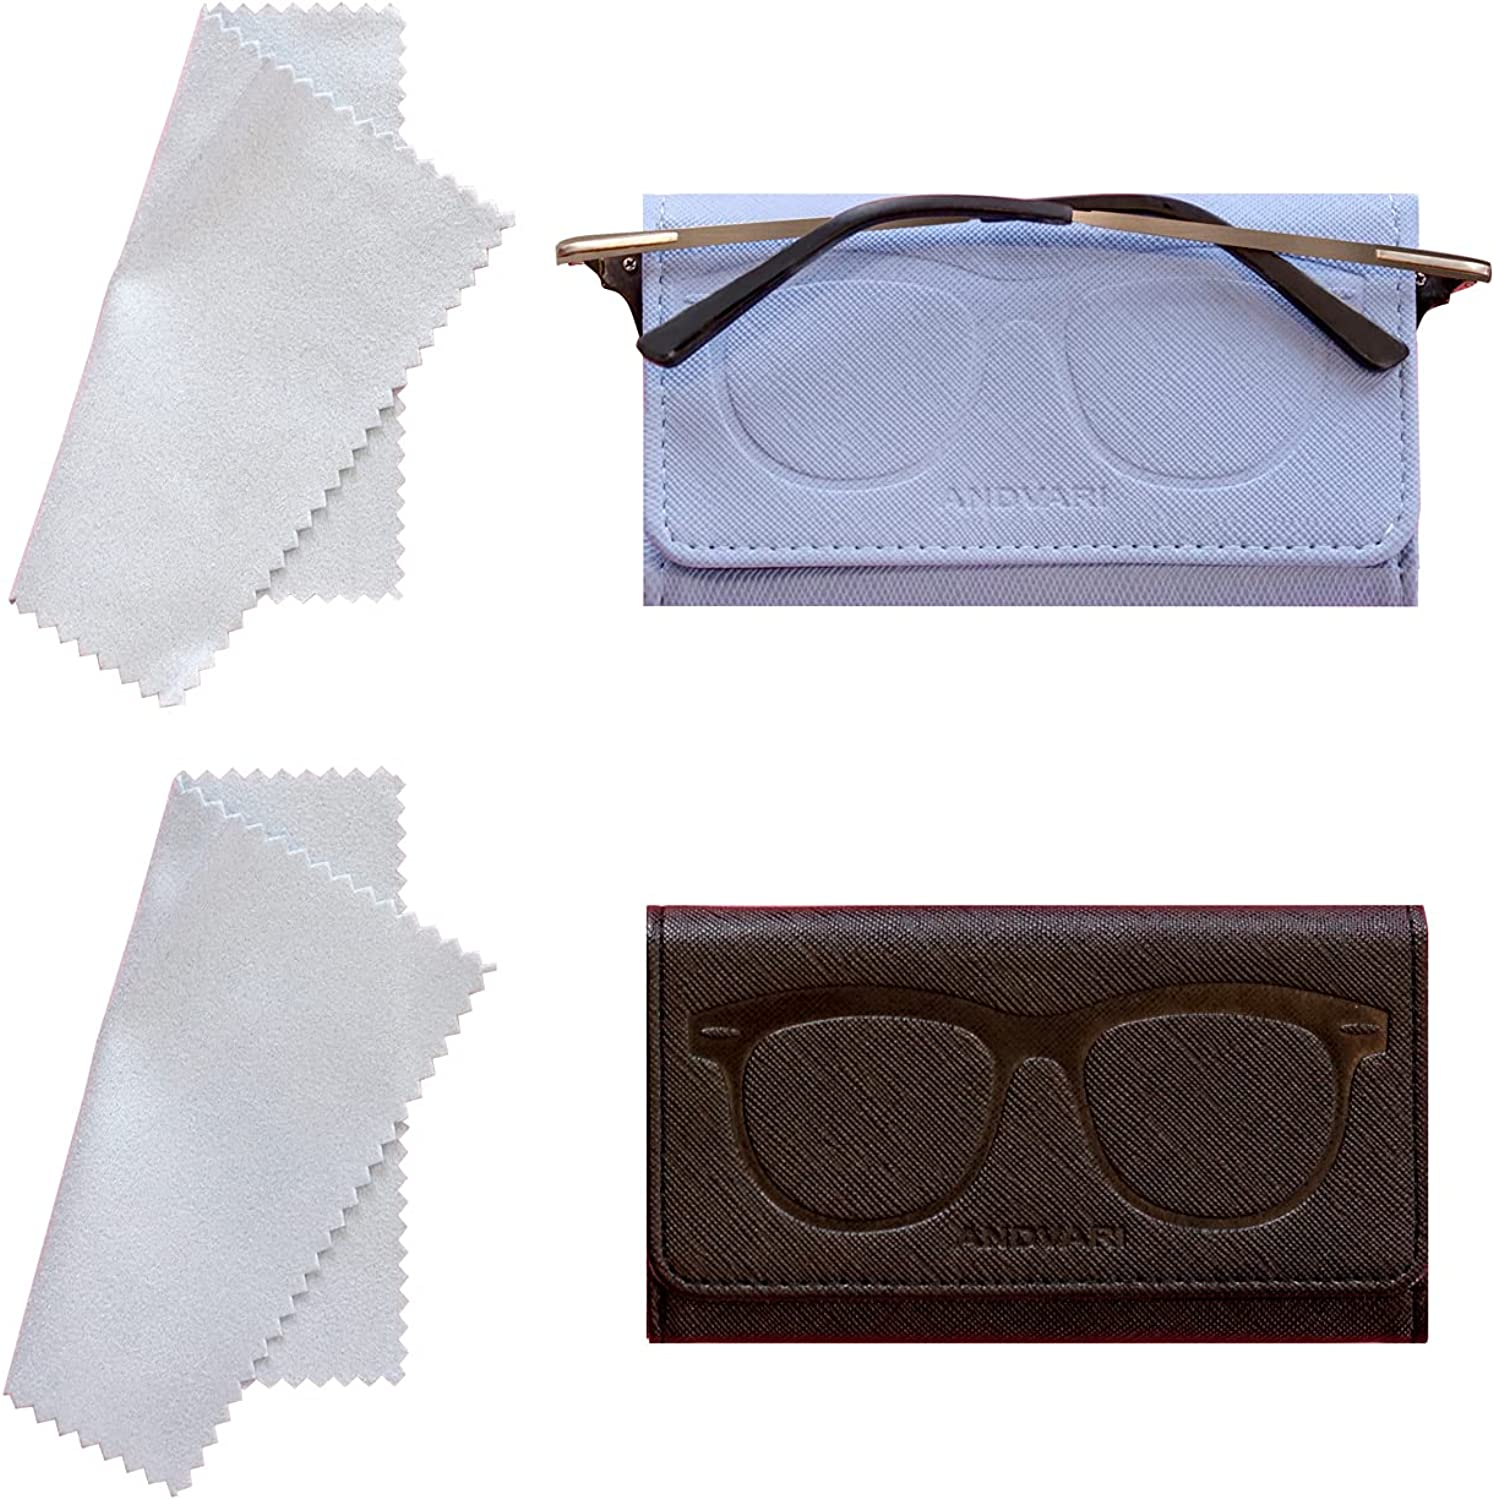 ANDVARI 2 Pack Leather Glasses Case for Women Soft Eyeglass Pouch Holder Spectacles Box Case with Microfiber Cleaning Cloth